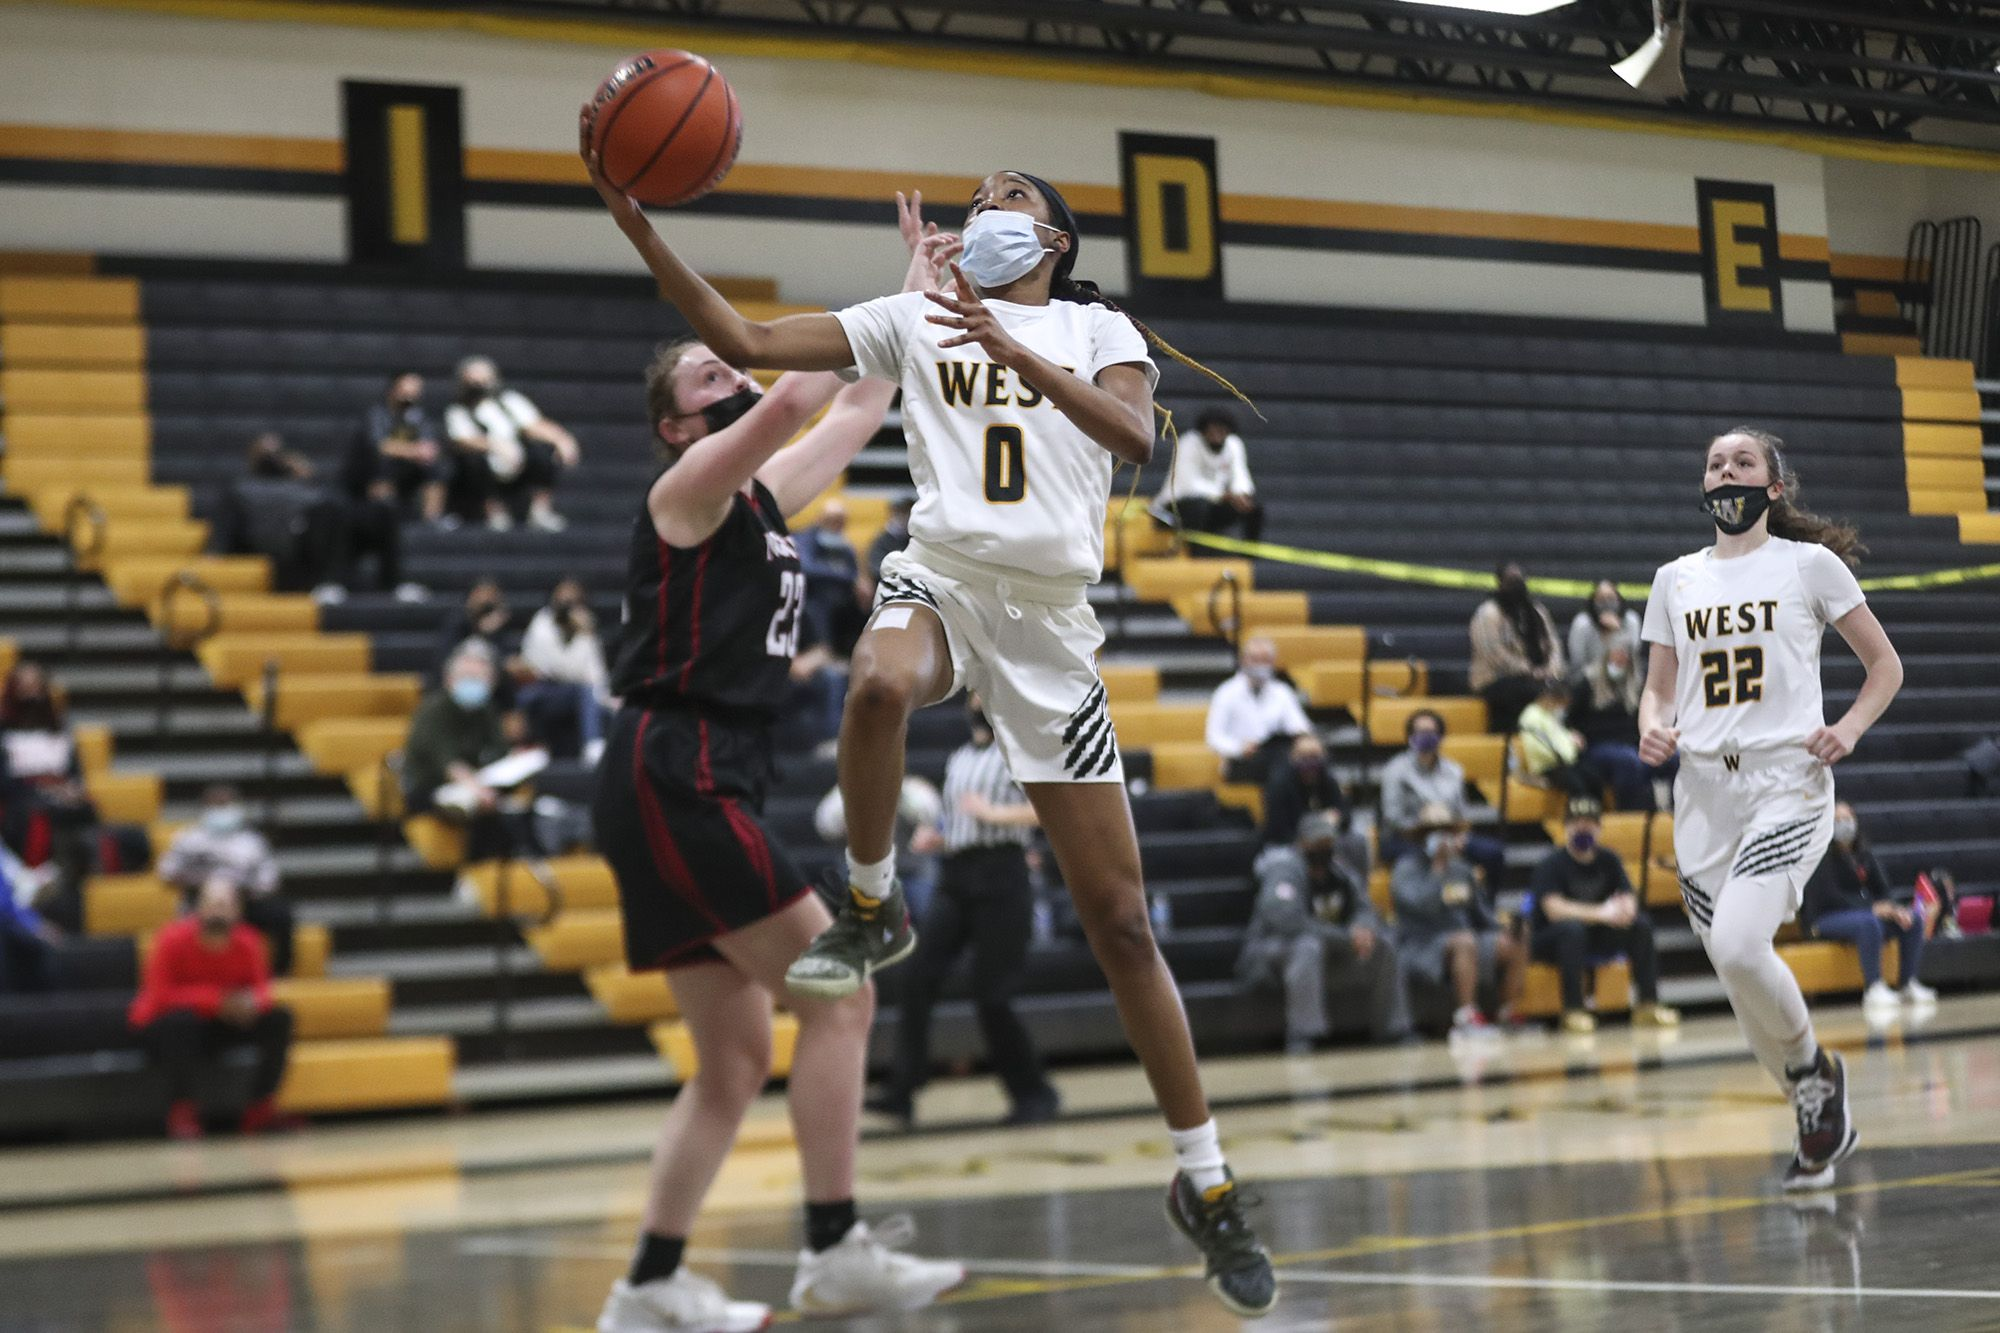 Joliet West's Lisa Thompson makes a layup on Saturday, March 13, 2021, at Joliet West High School in Joliet, Ill.